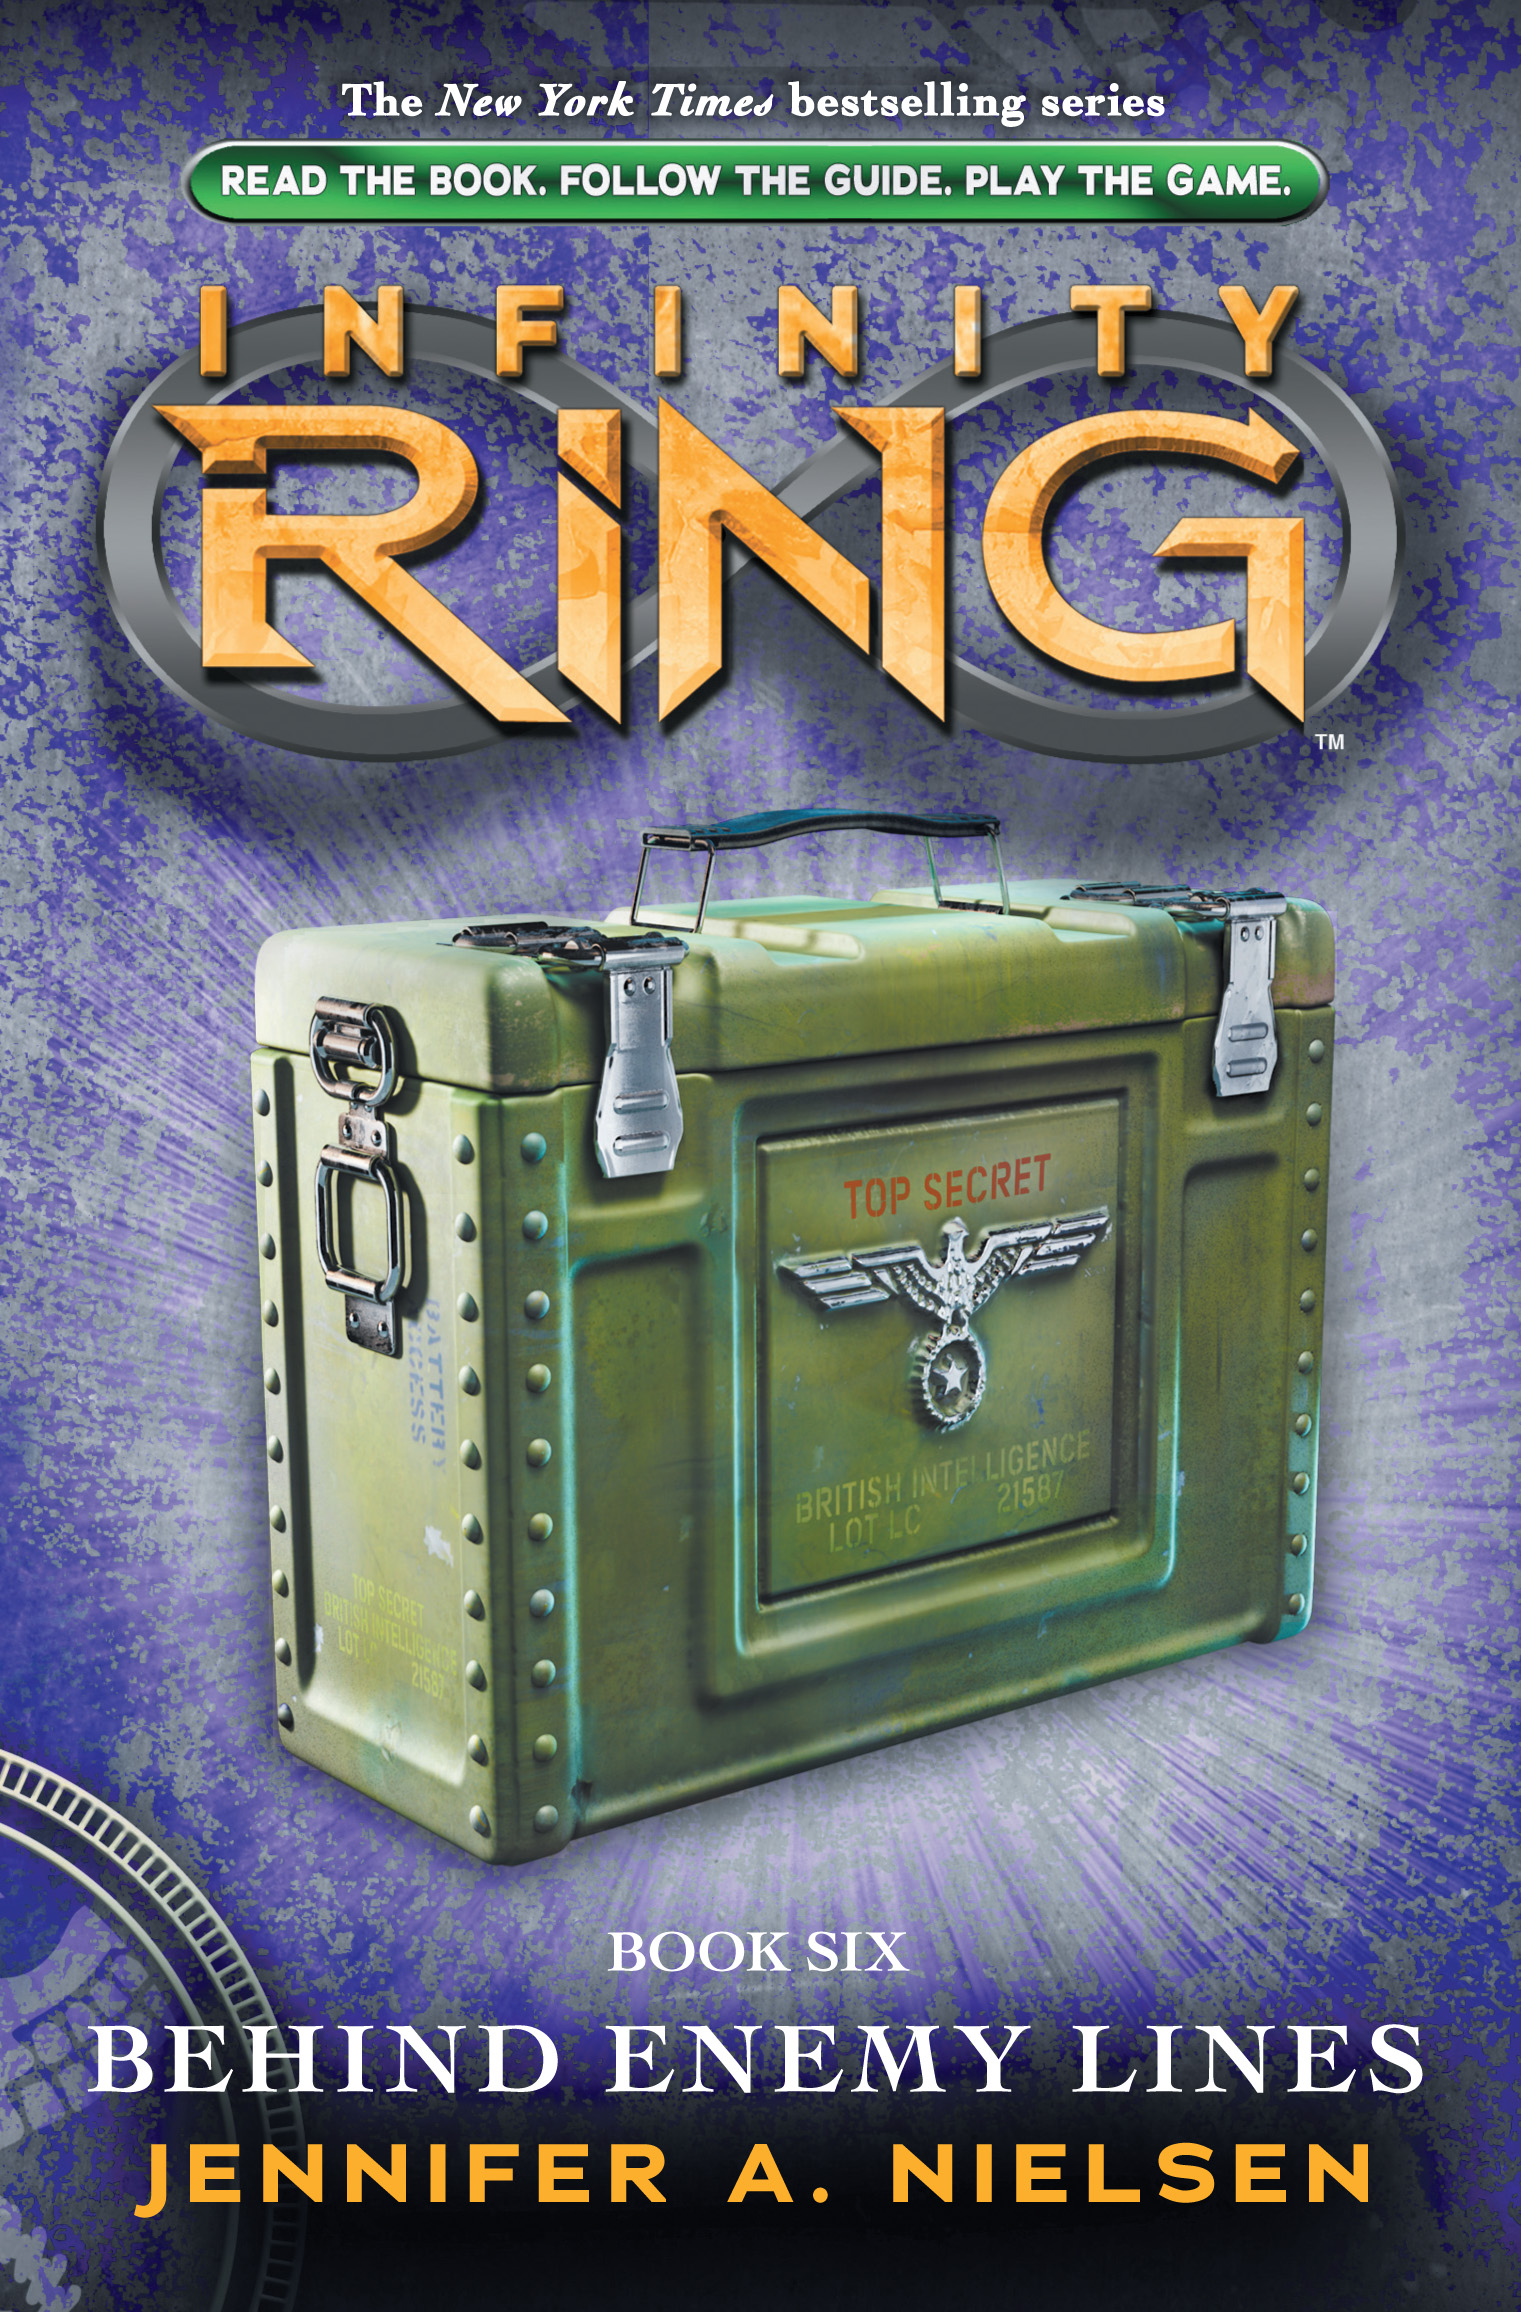 INFINITY RING Cover Reveal! | Jennifer A. Nielsen - Author Infinity Ring Book Series